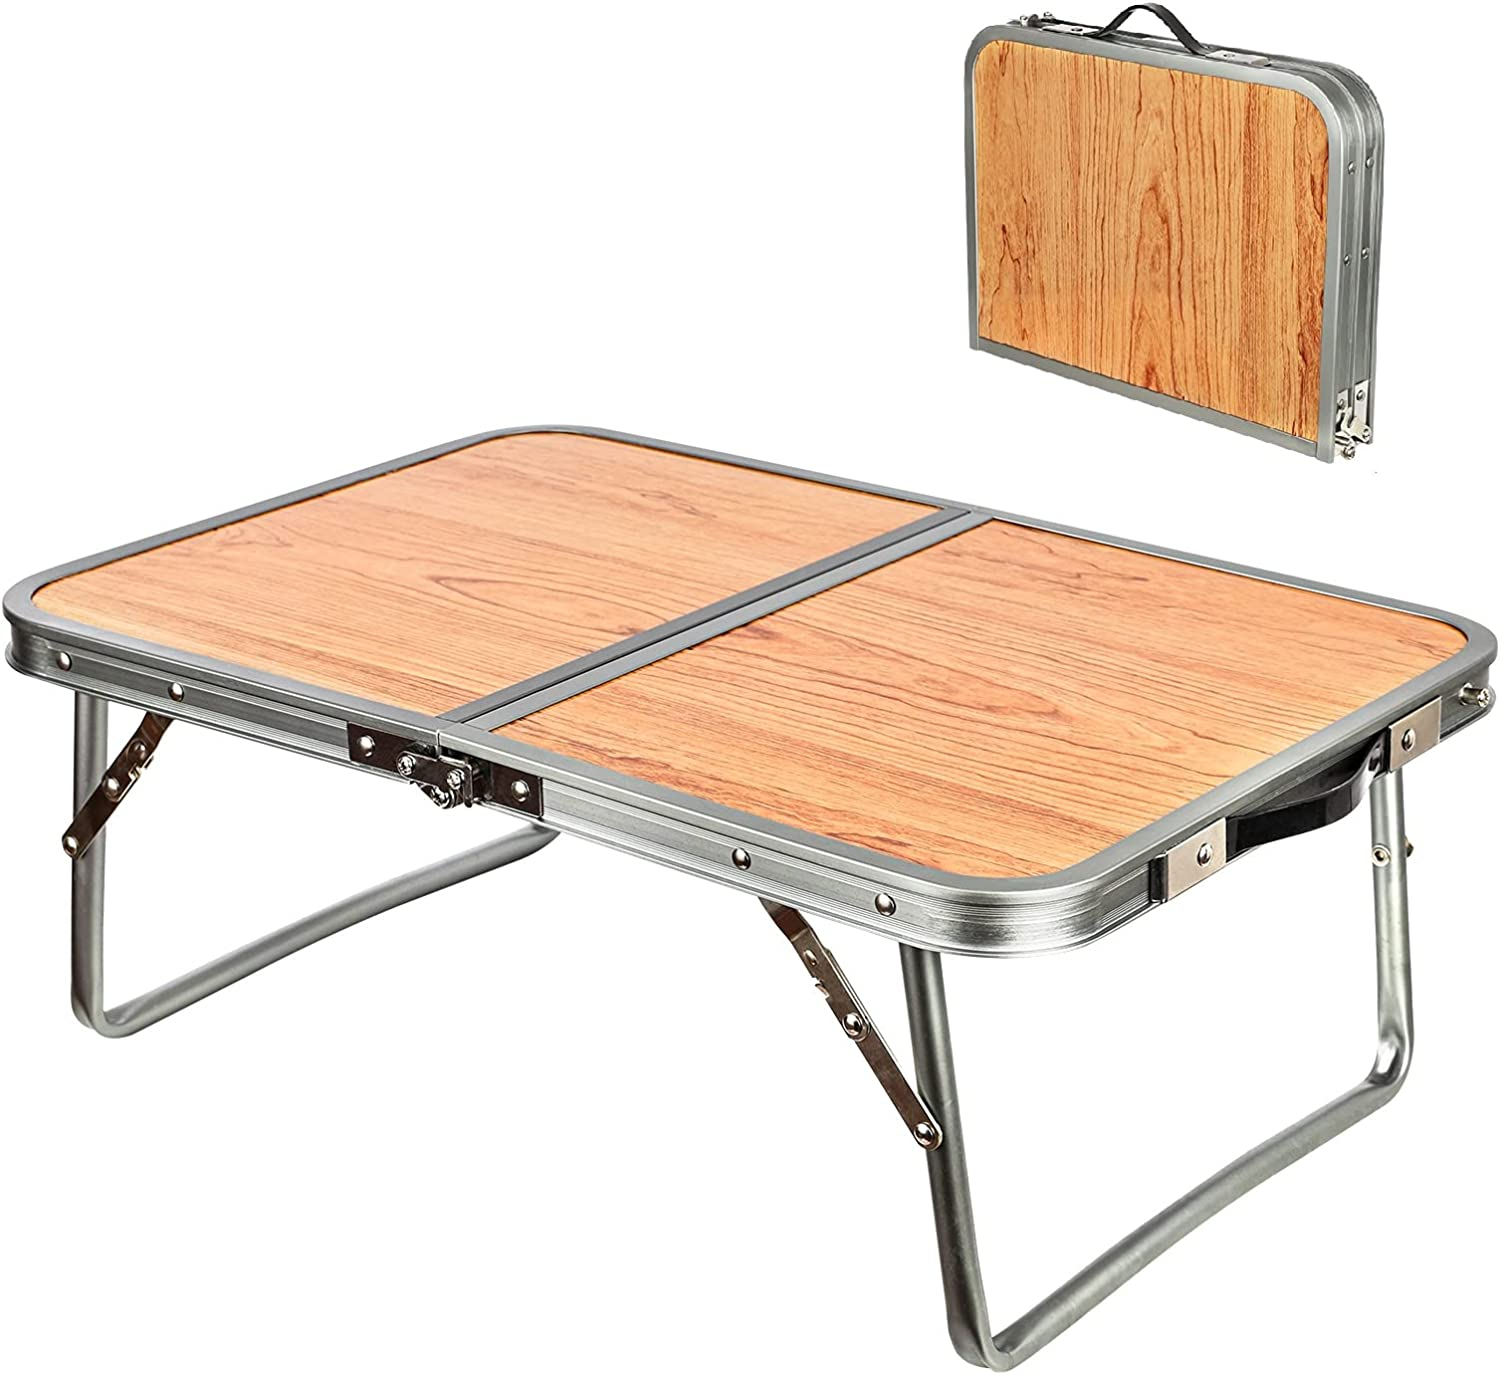 ICECO Folding Camping Table Portable, Lightweight Aluminum Small Picnic Table Laptop Table for Indoor Outdoor Camp Beach